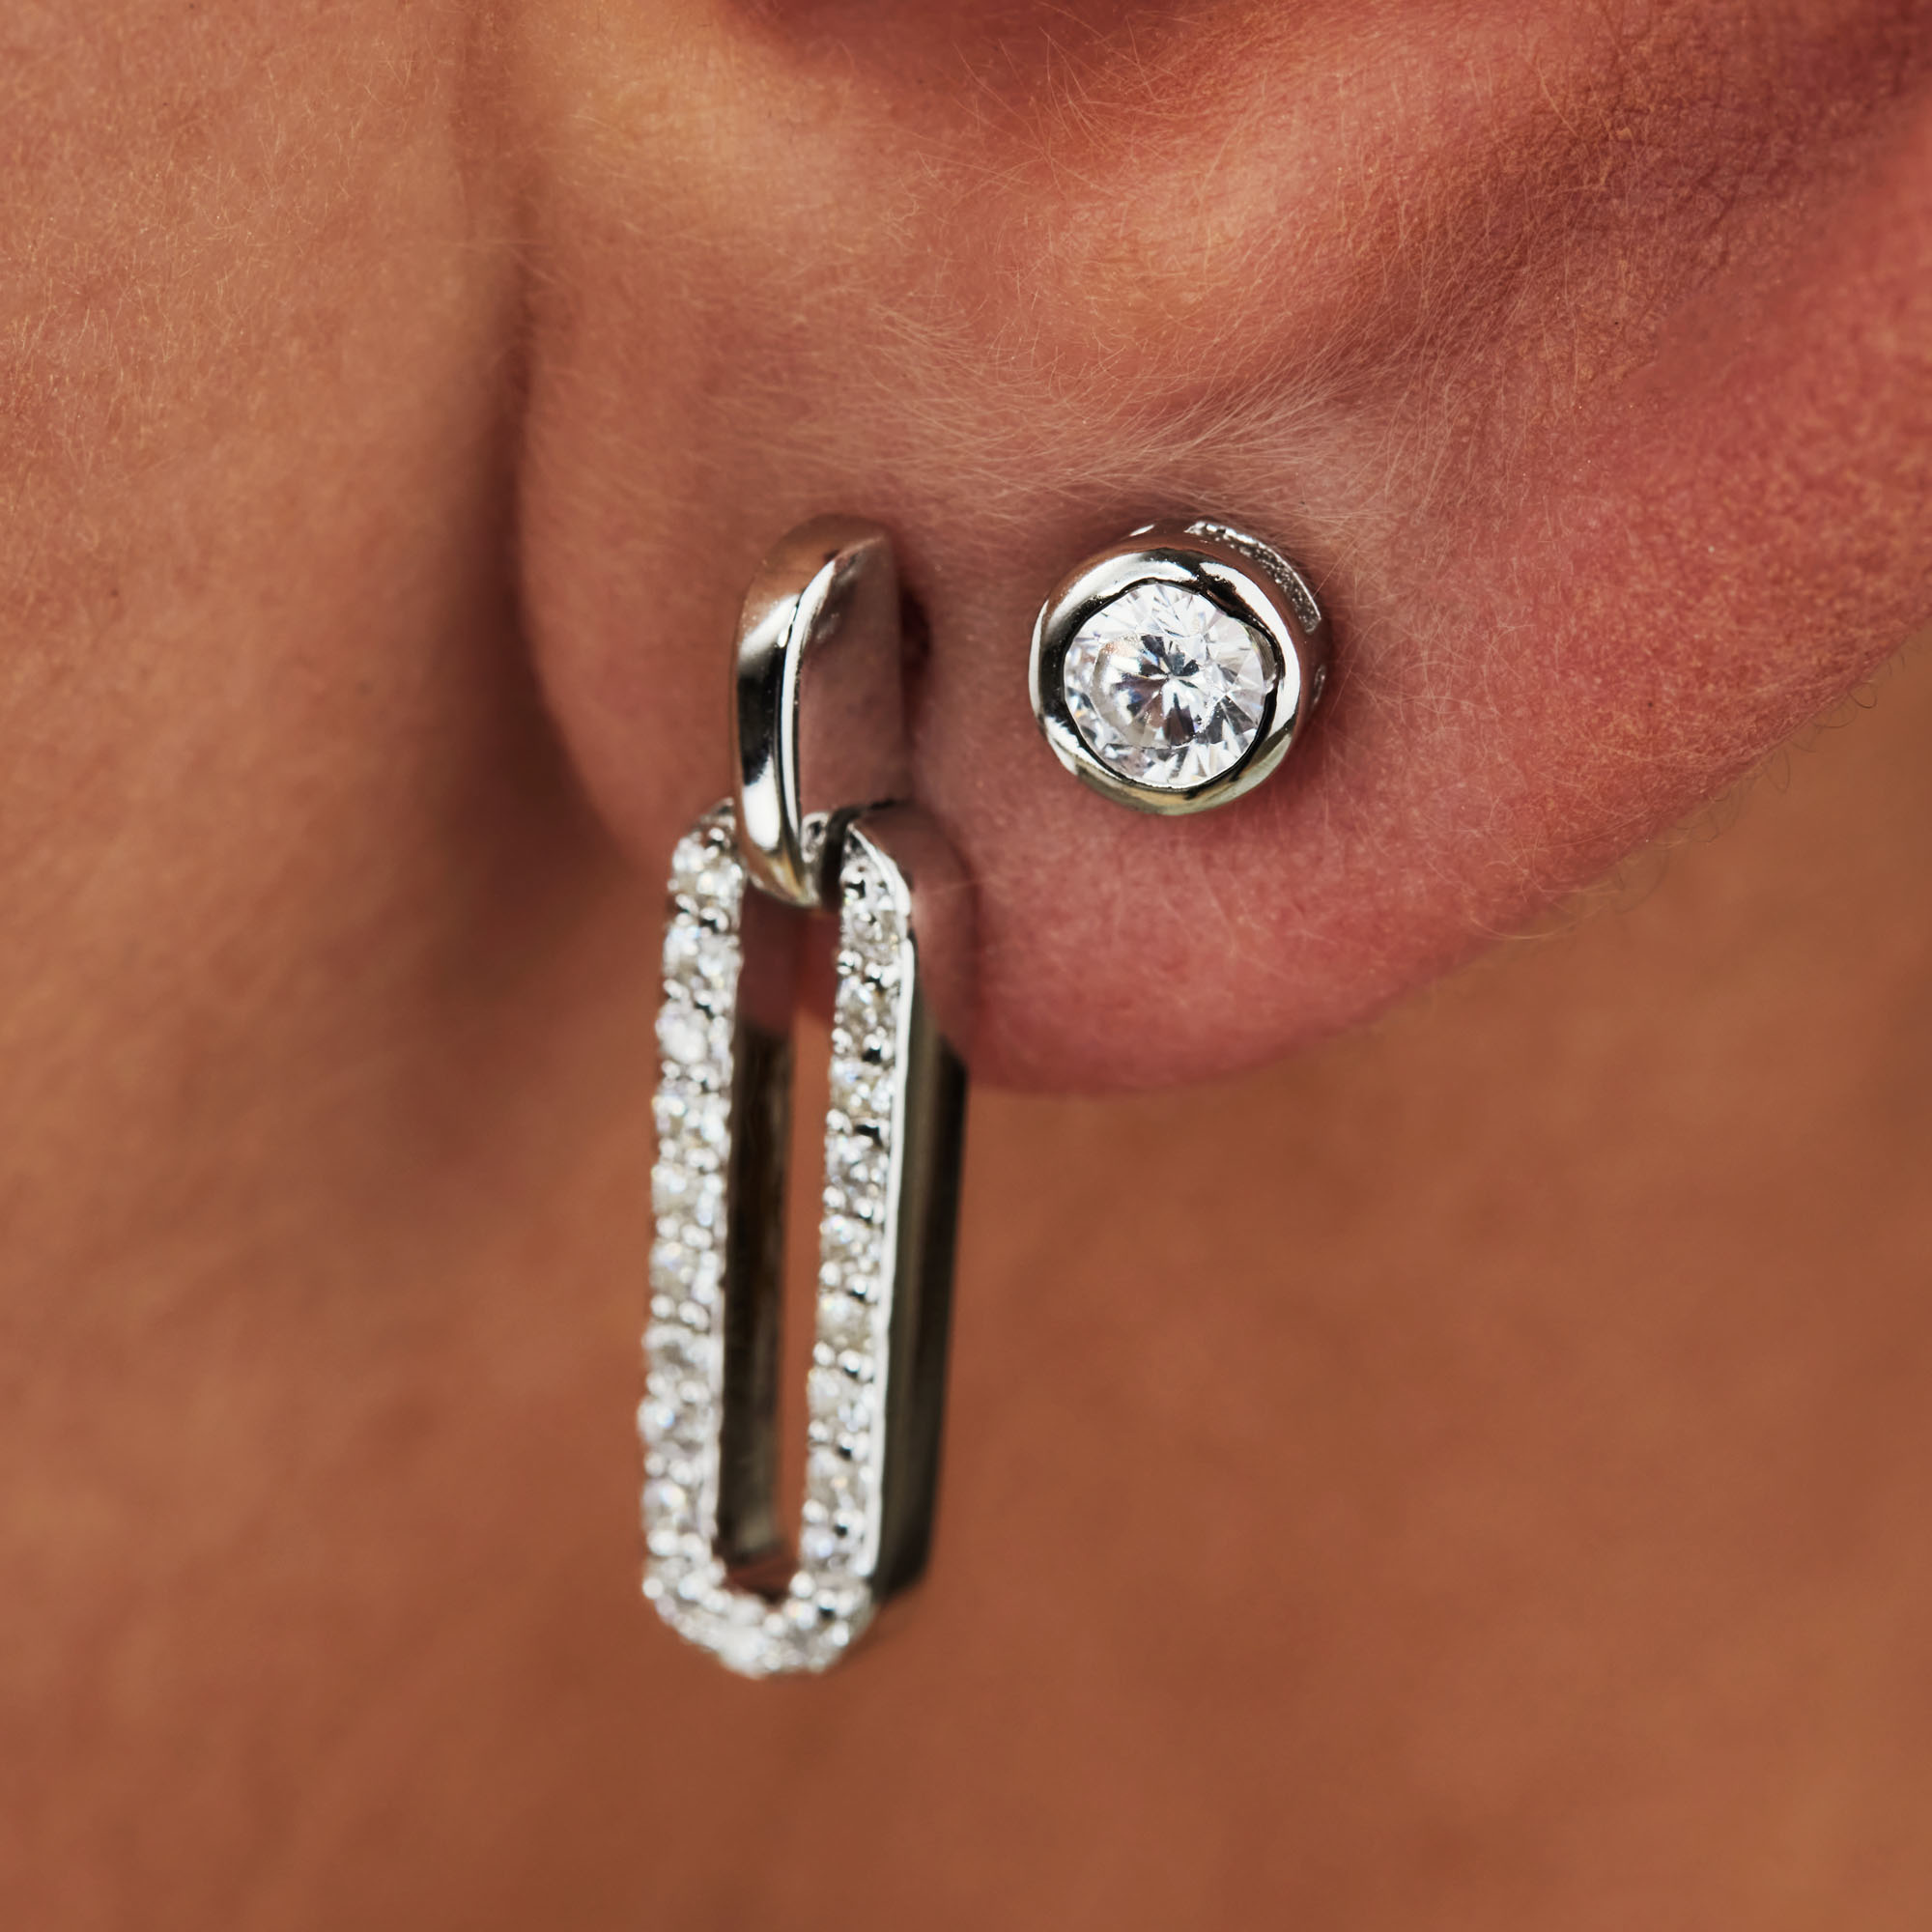 Selected Jewels Mila Elodie 925 sterling silver ear studs with zirconia